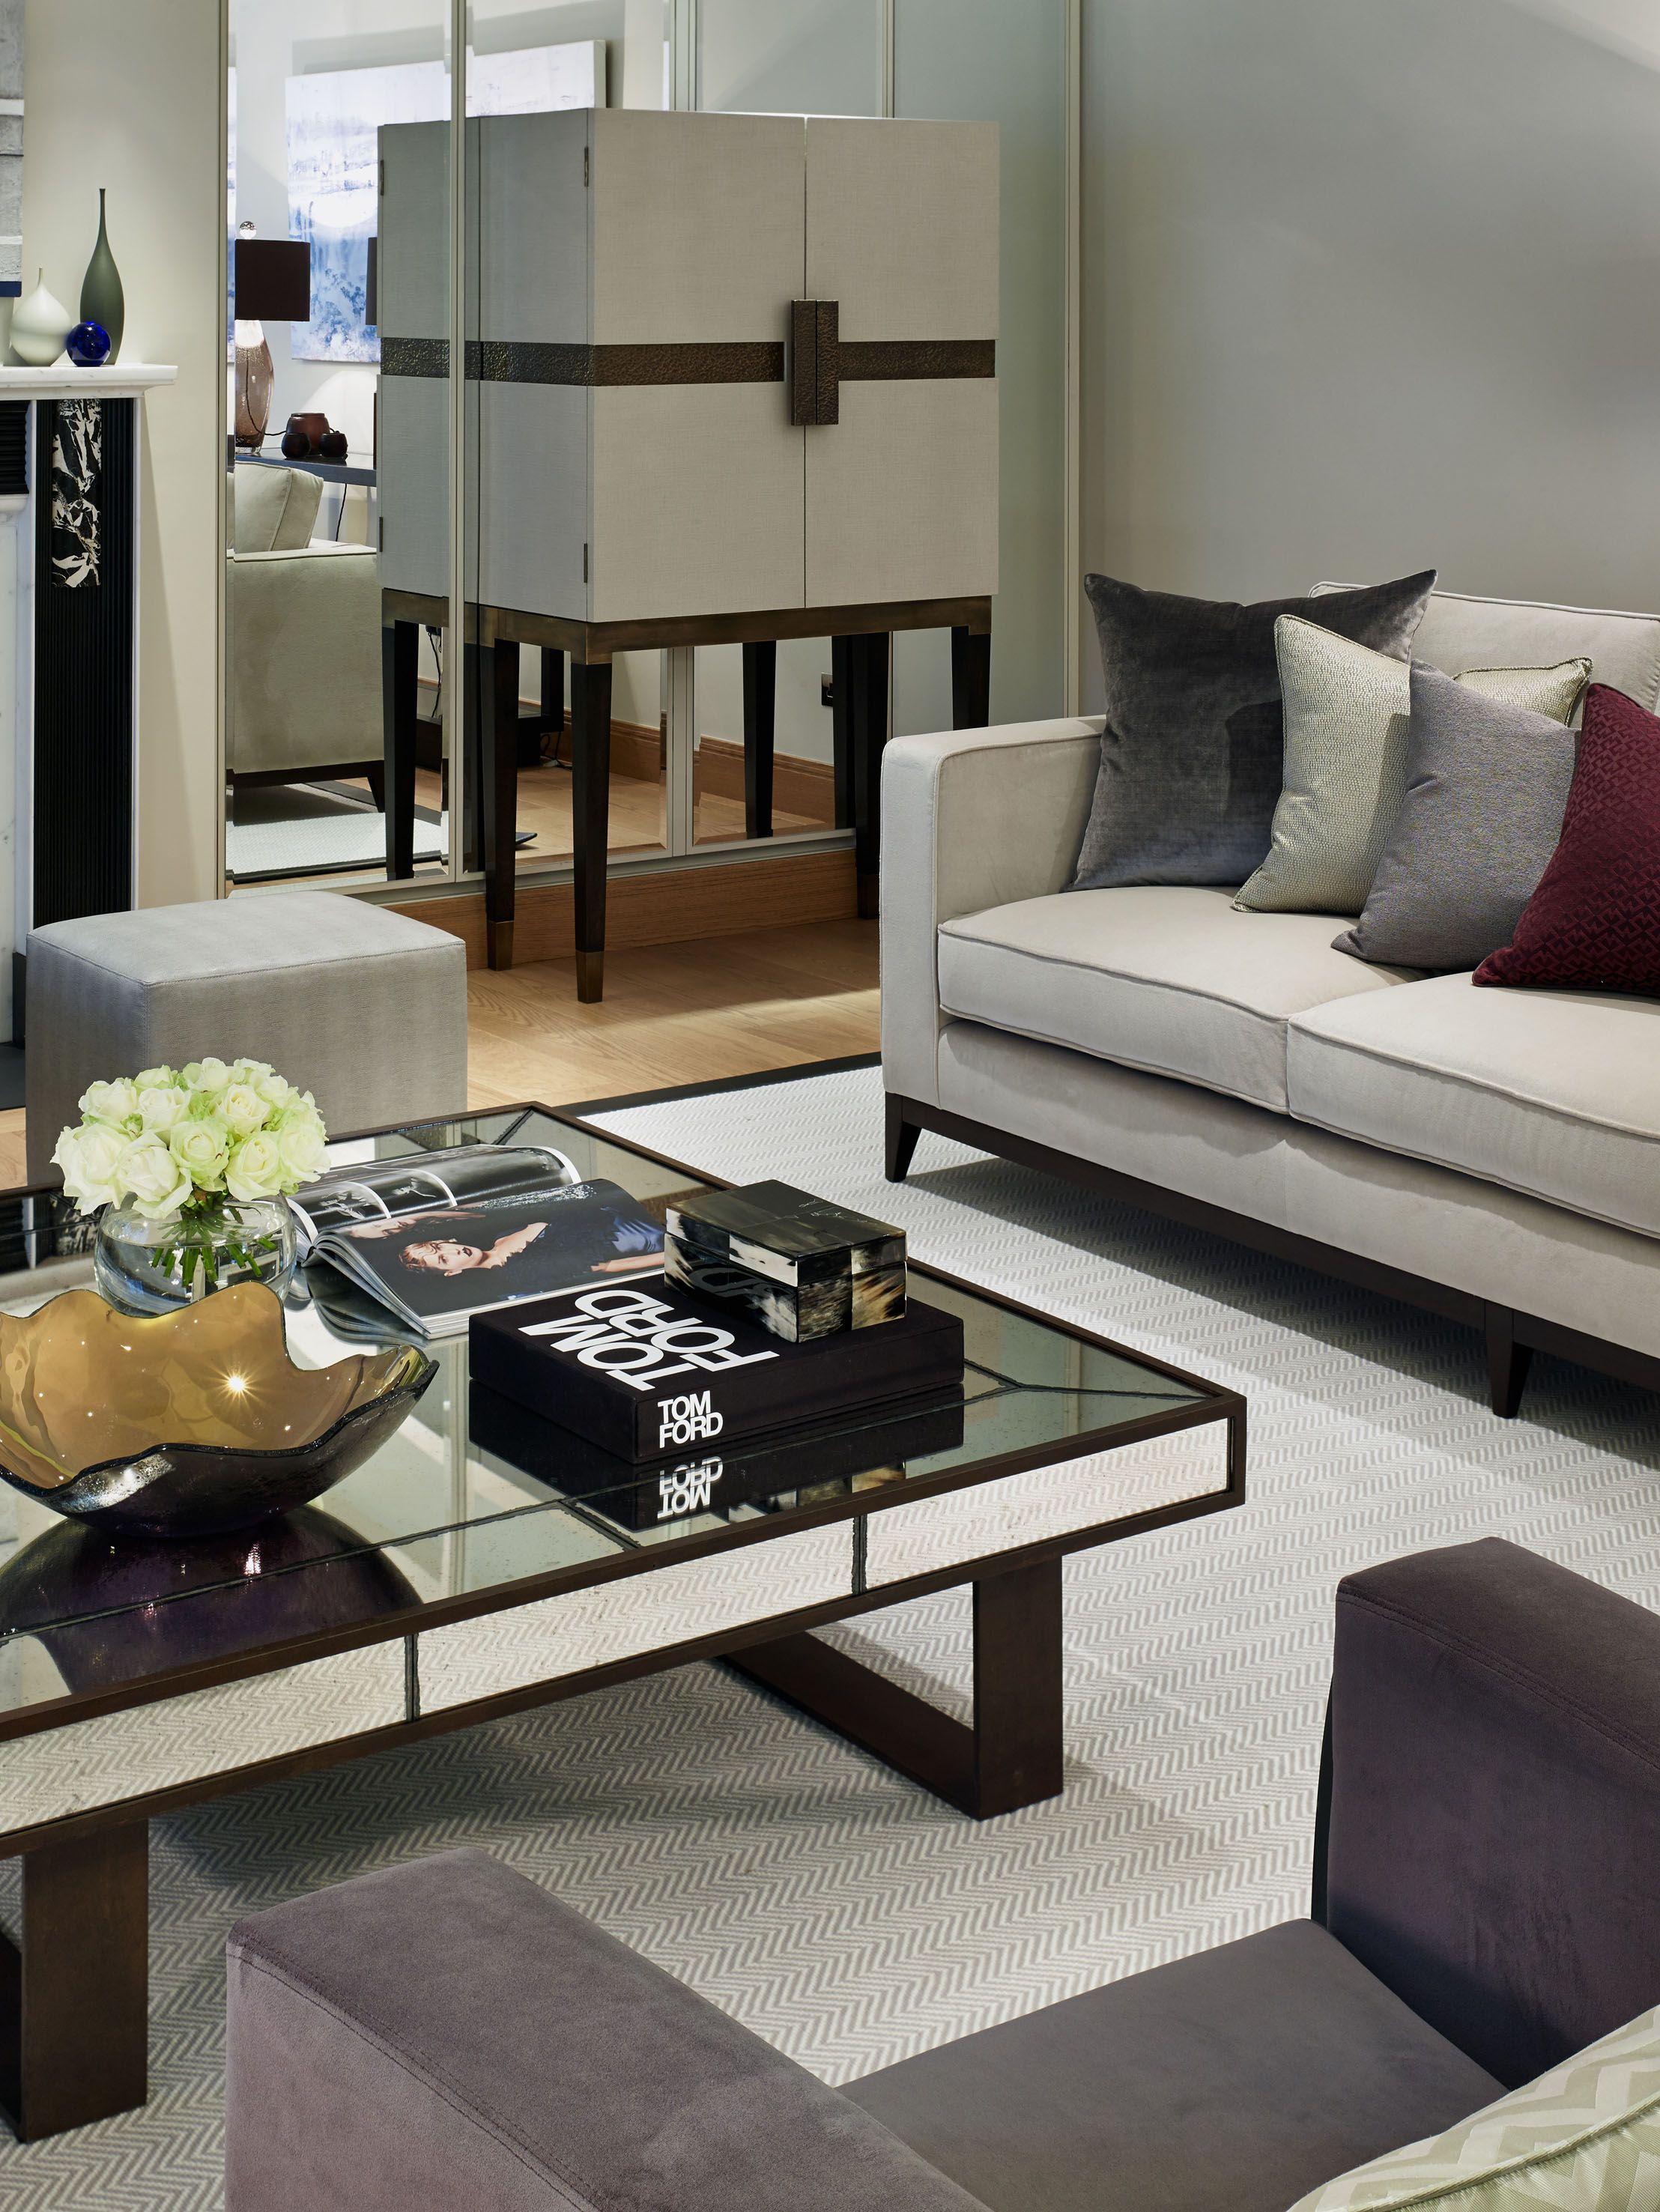 Chelsea London Luxury Interior Design Reception Room